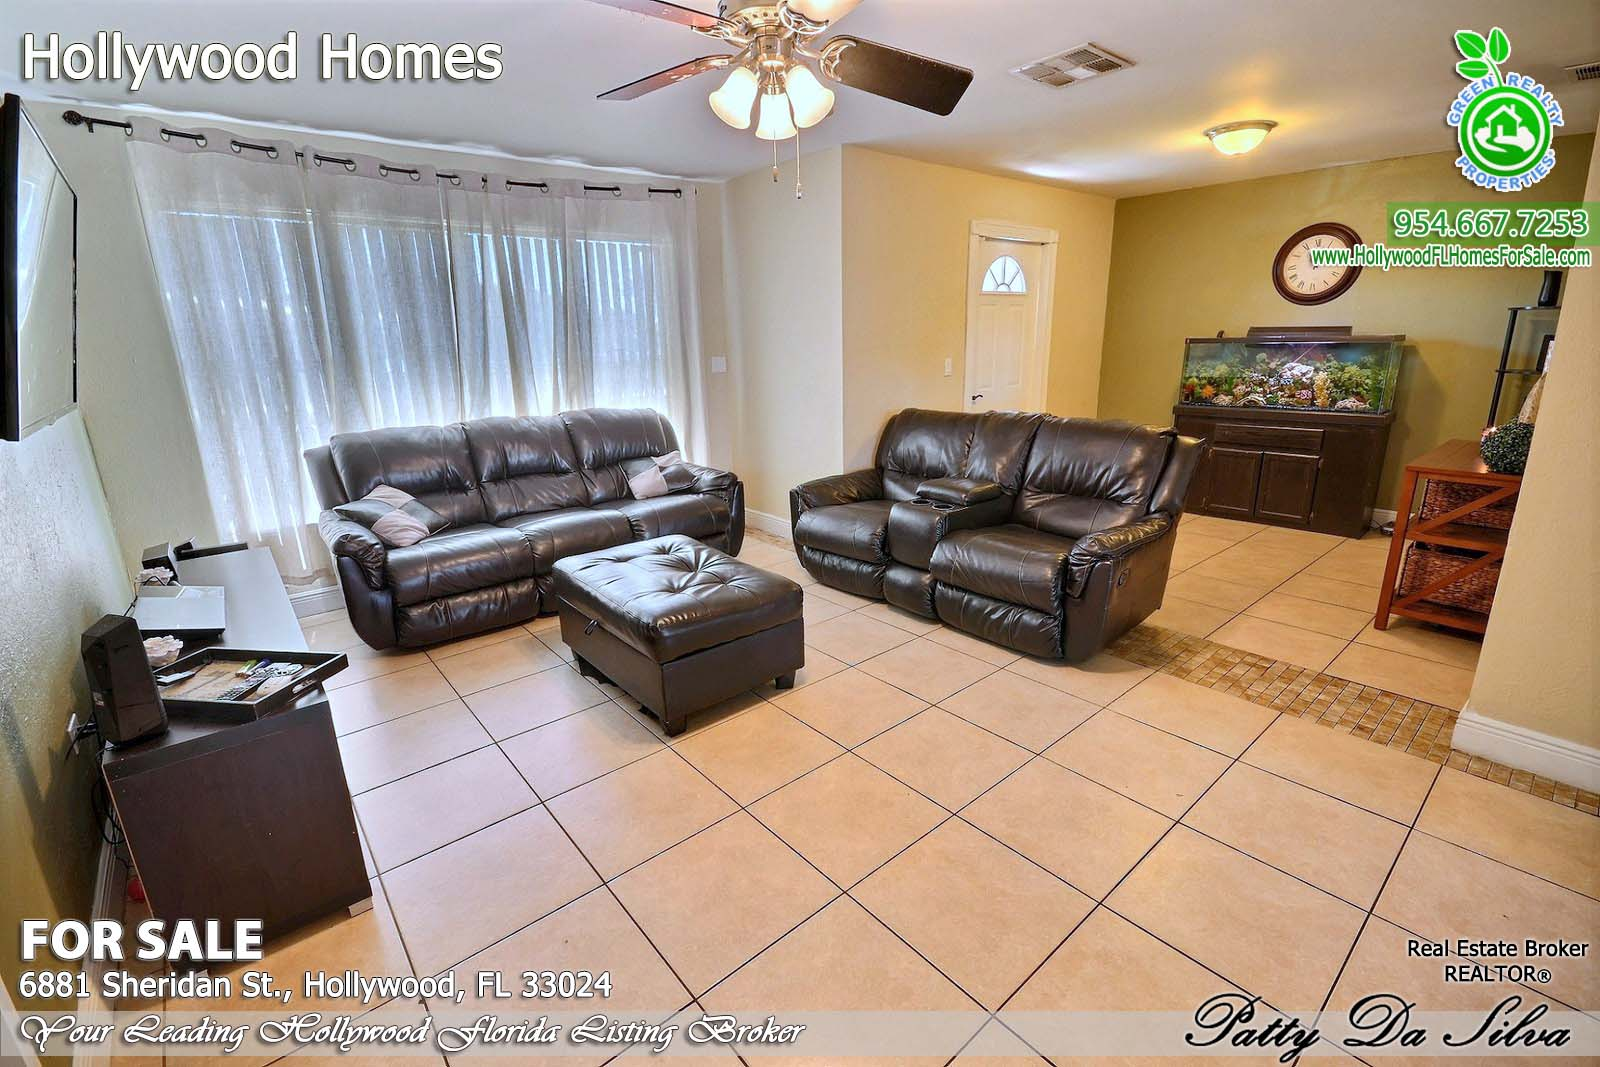 Hollywood FL Homes For Sale (20)